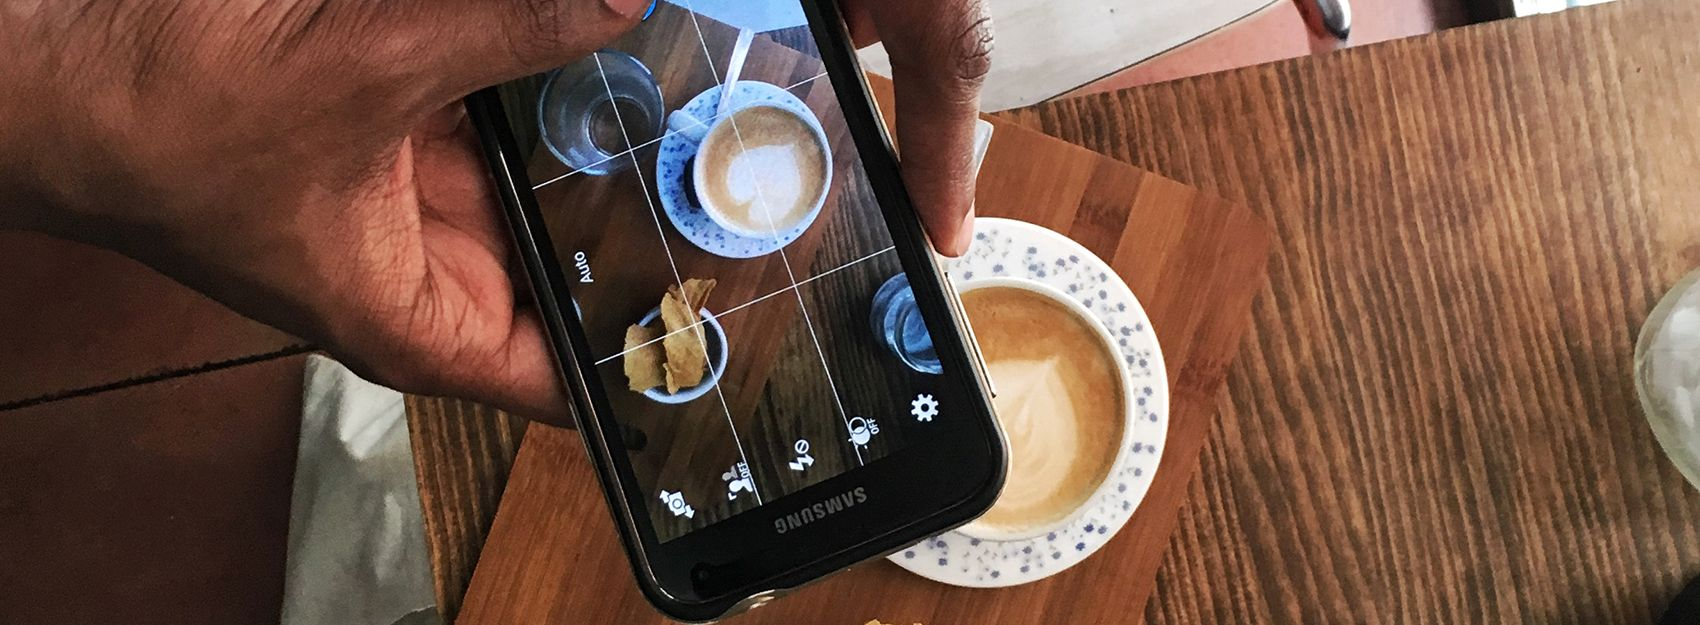 Student photographing coffee drink with smartphone